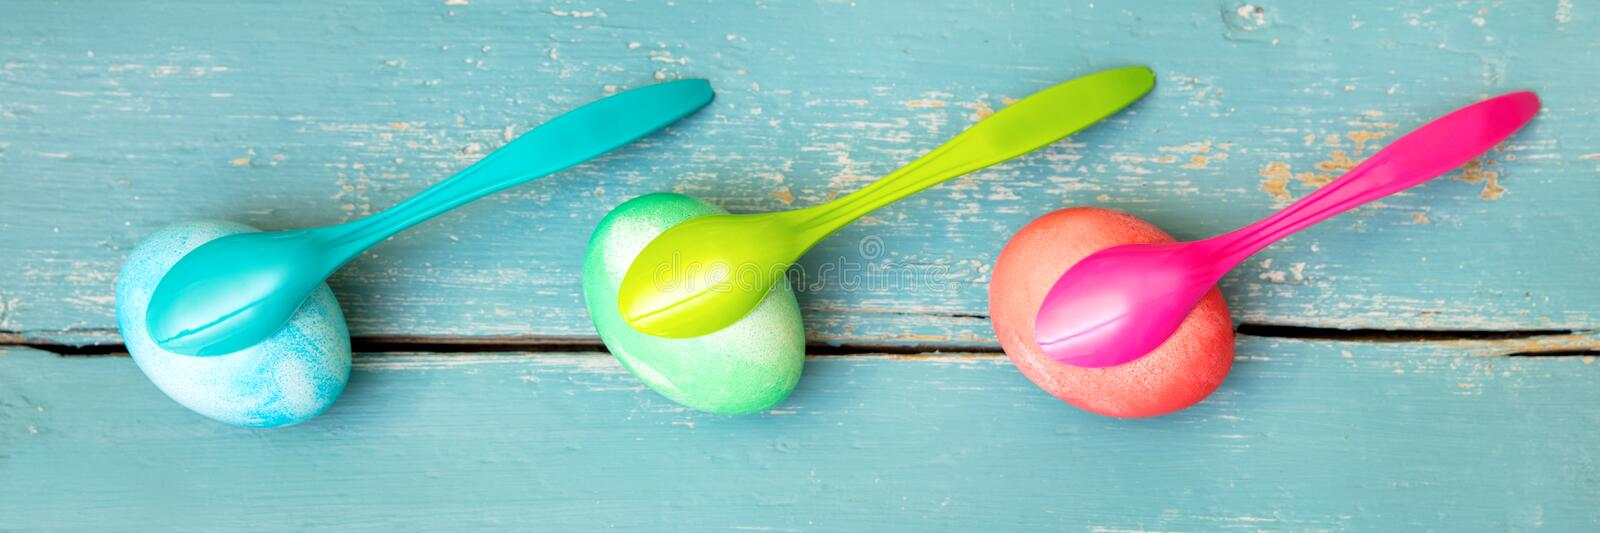 Three colorful dyed easter eggs and egg spoons on blue wooden background royalty free stock image